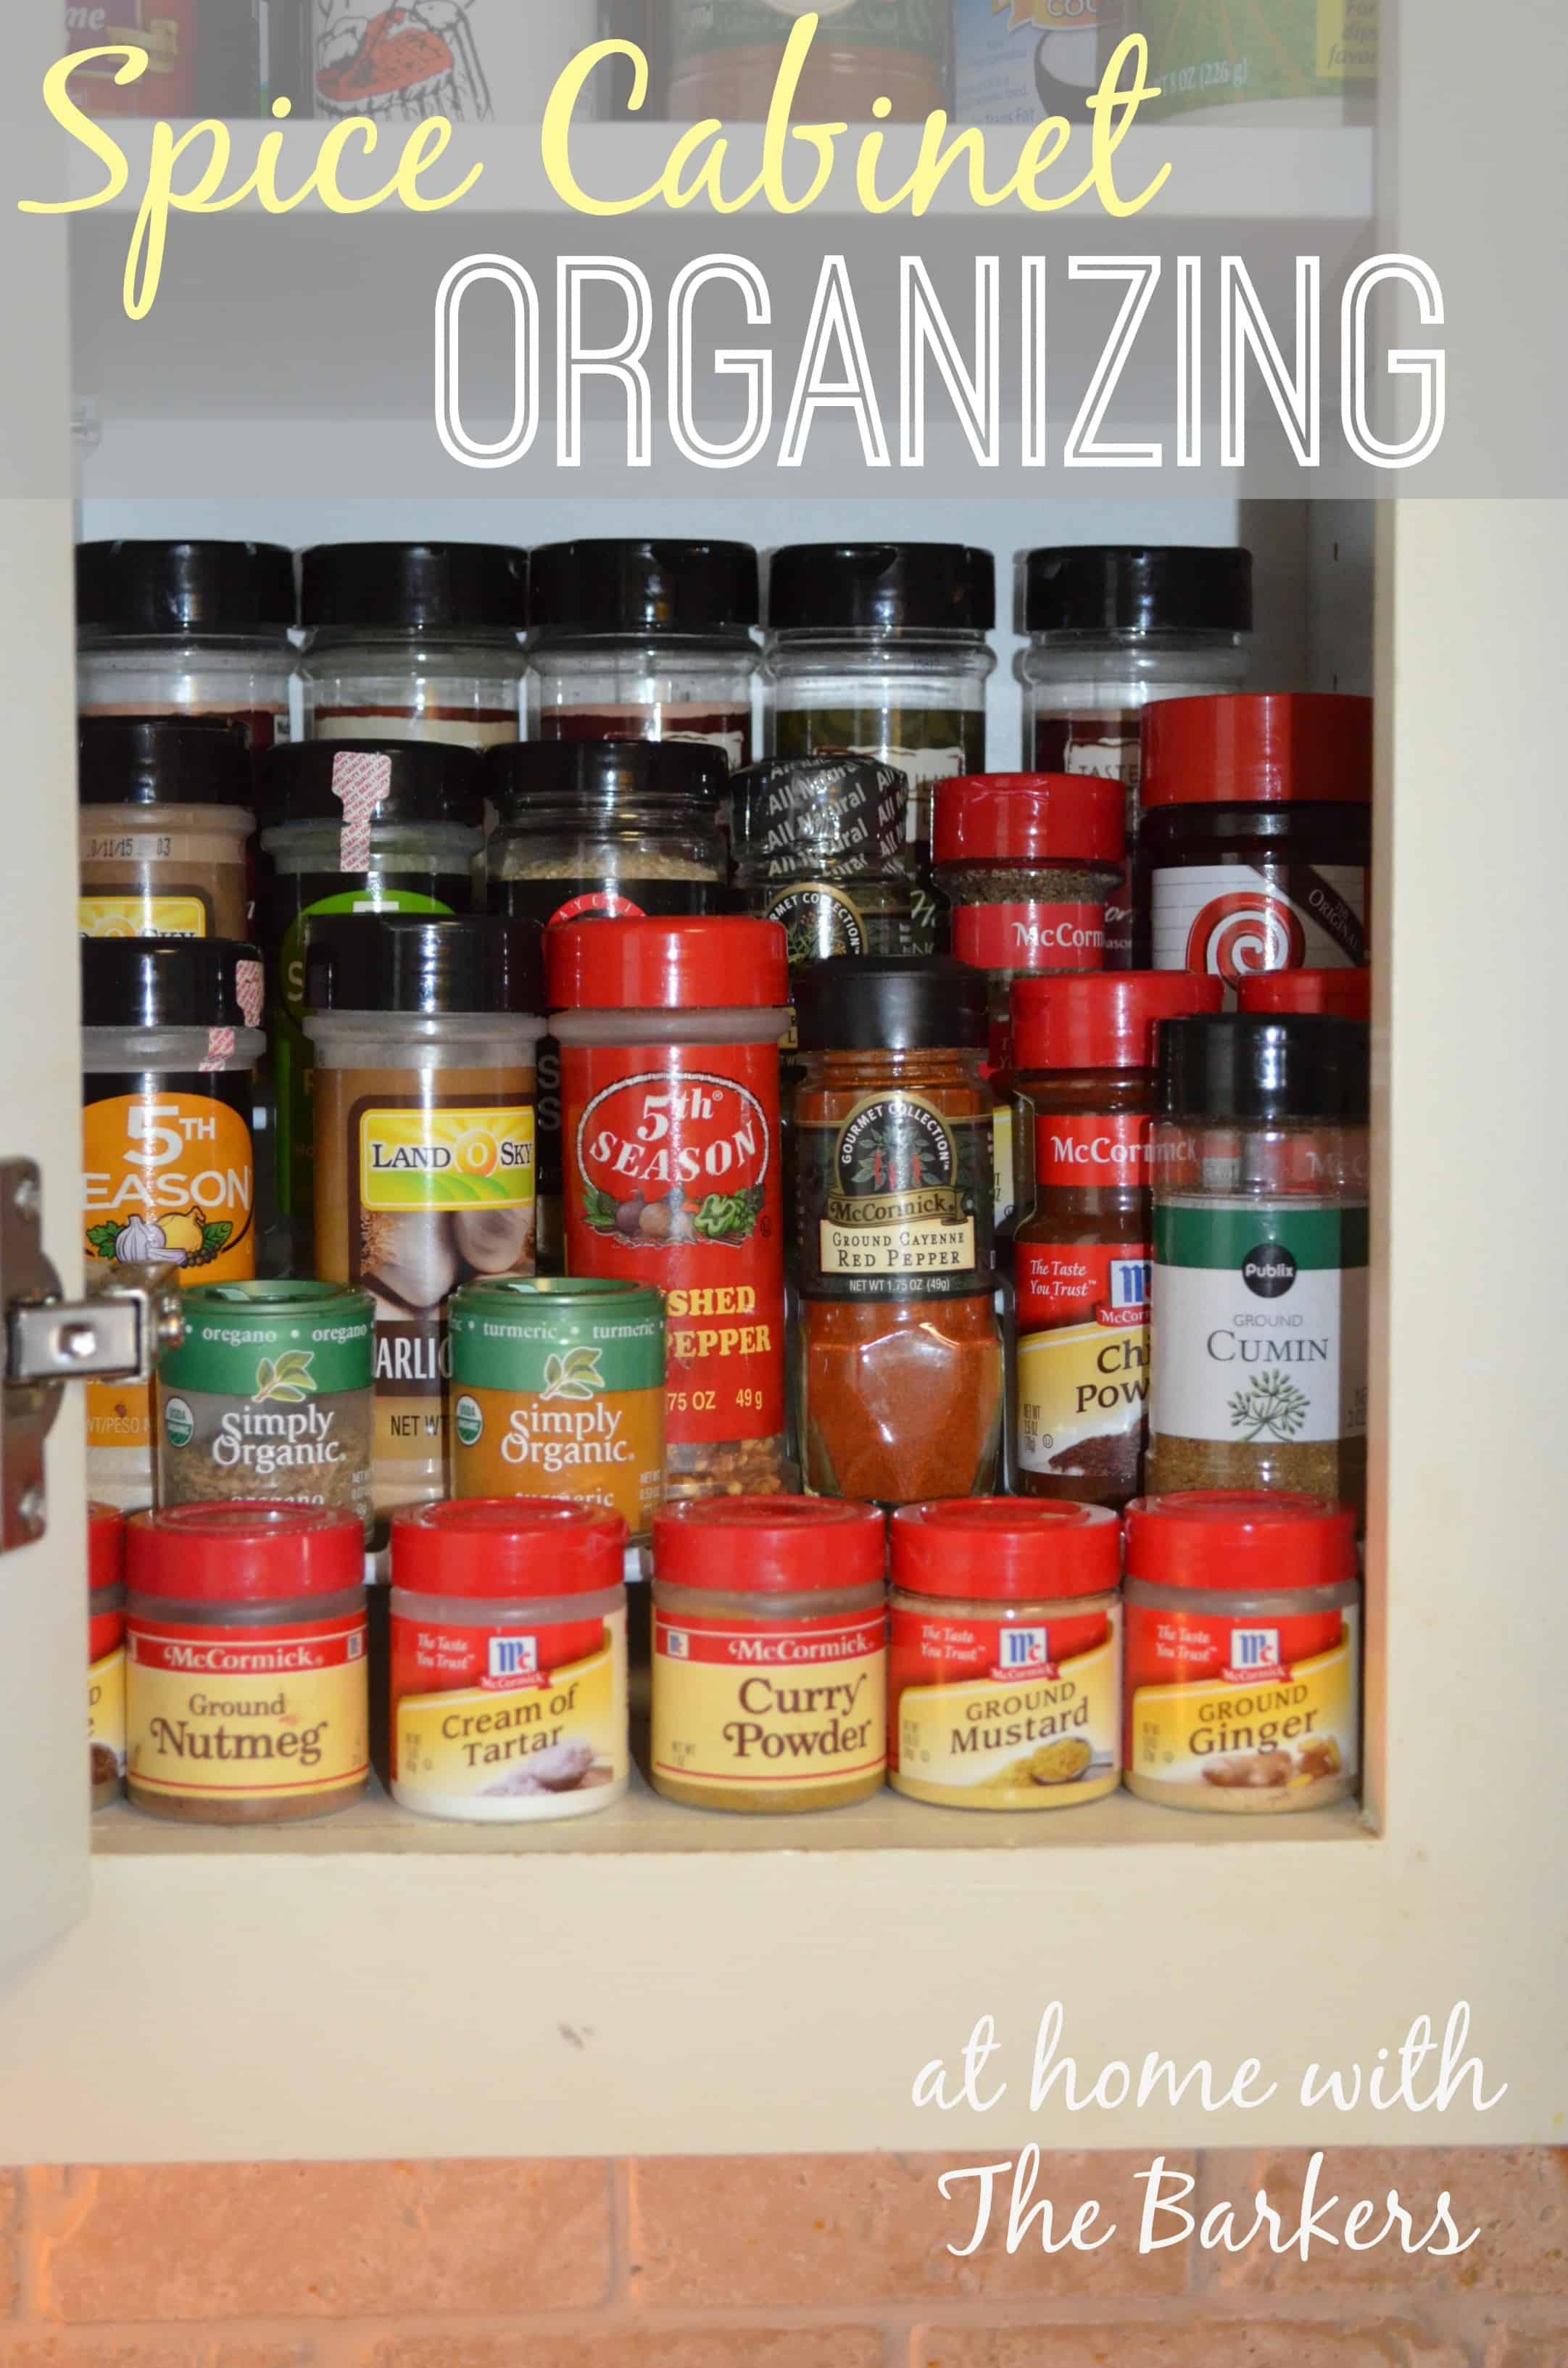 Spice Cabinet Organizing